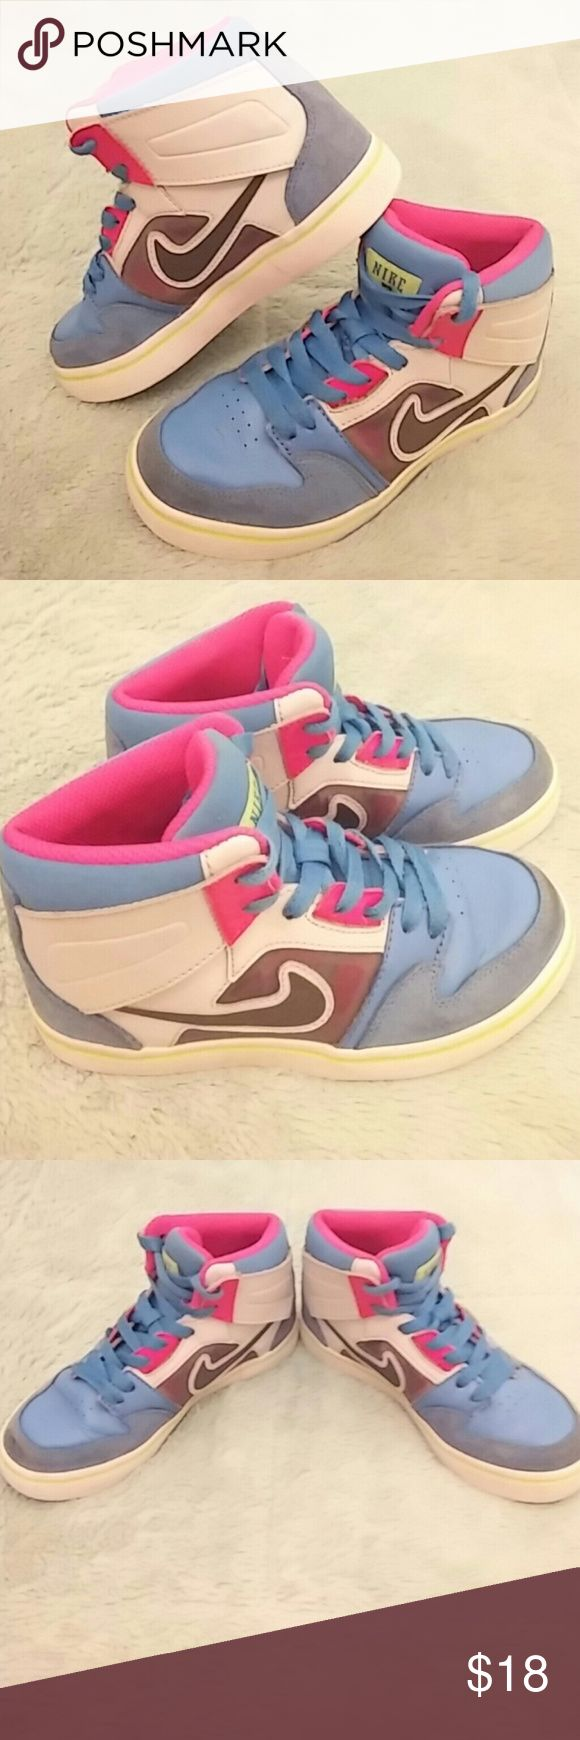 Cute*NIKE* hi-top's Fun, flashy *NIKE* hi-top's.... These do have ware on them... They have been worn a good bit... They are still so cute though and i think the right kid could rock these kicks!!! Nike Shoes Sneakers